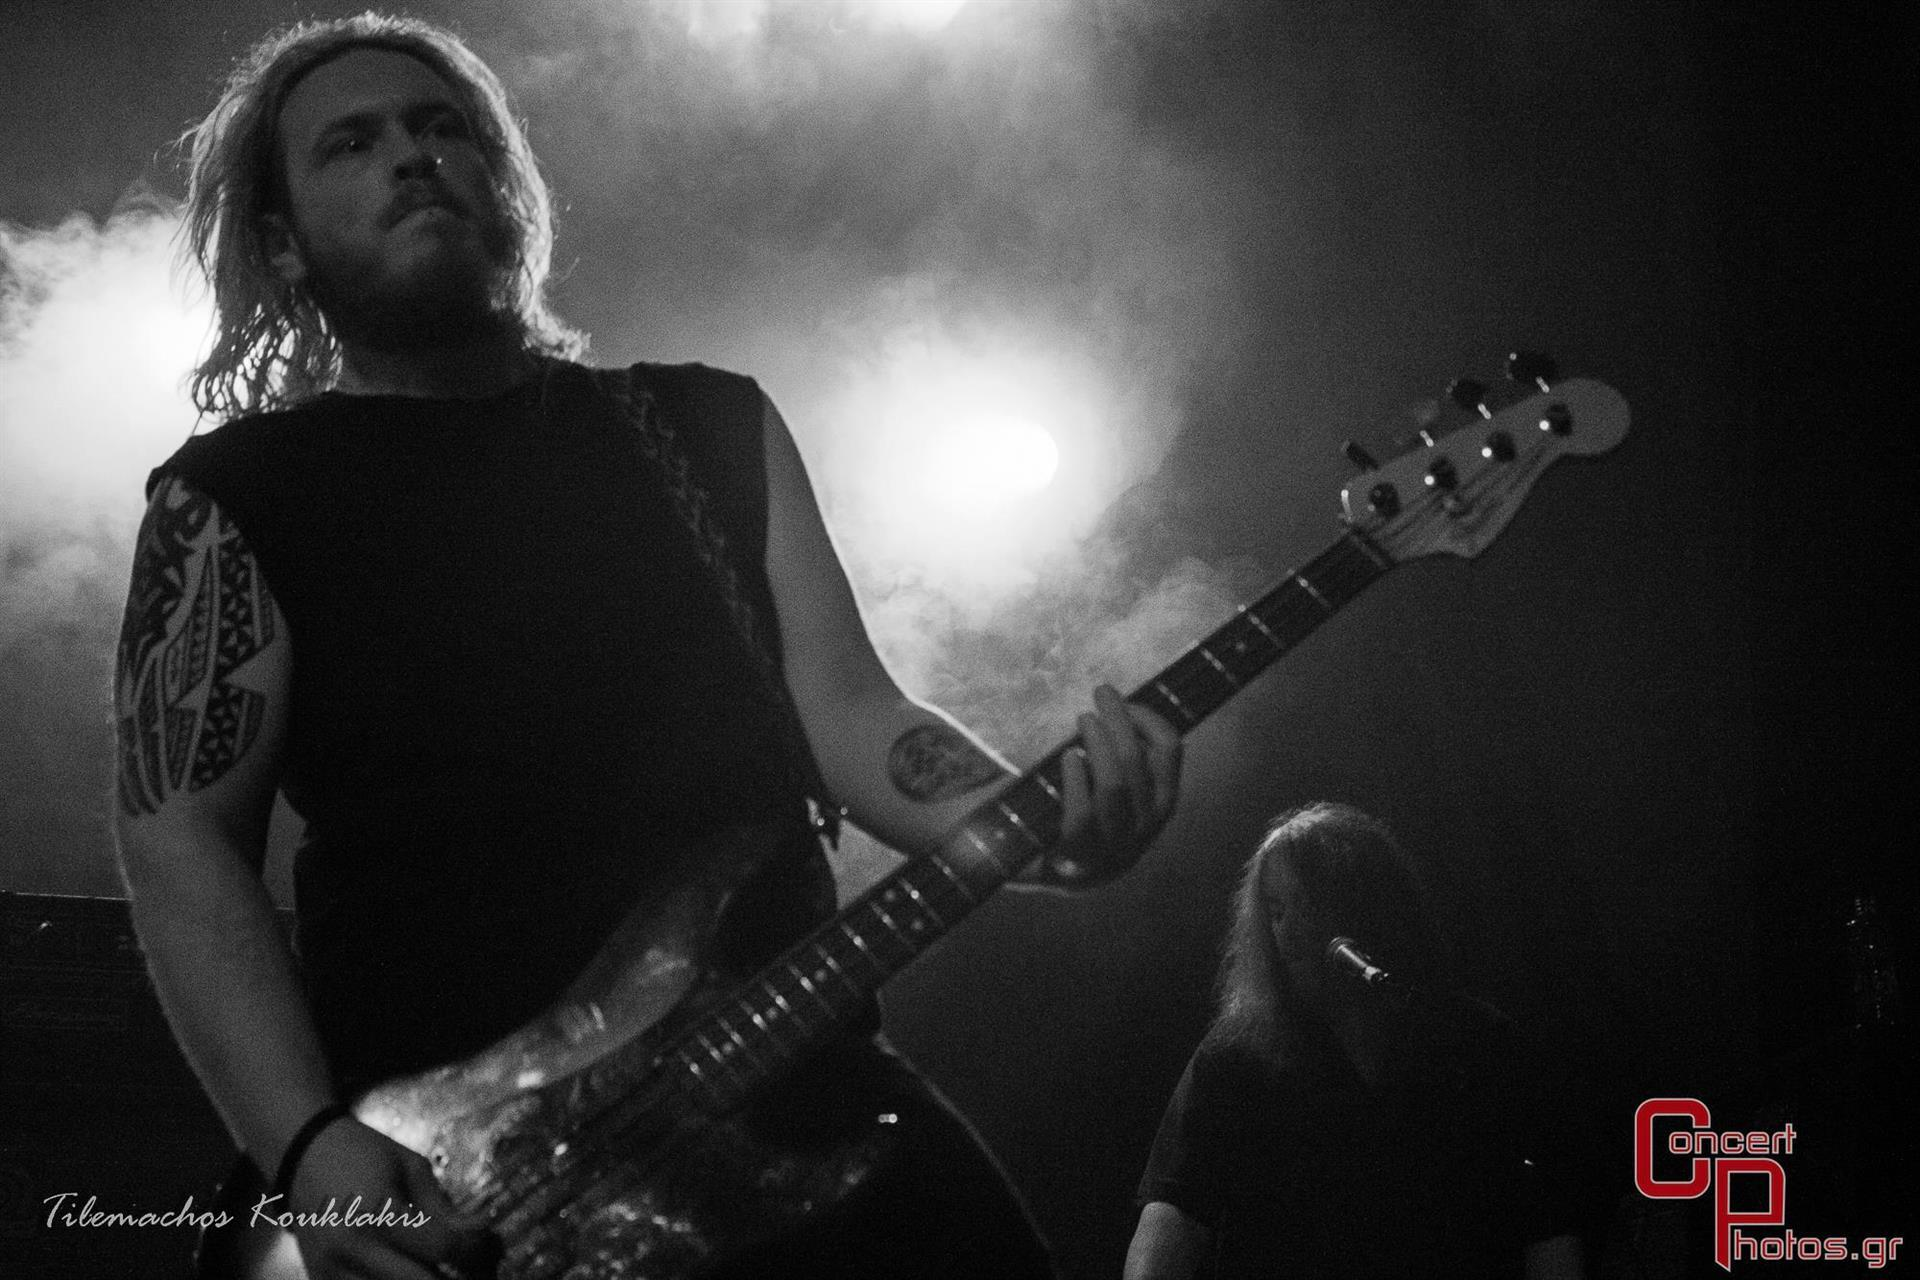 New Model Army - False Alarm-New Model Army - False Alarm photographer:  - IMG_4426